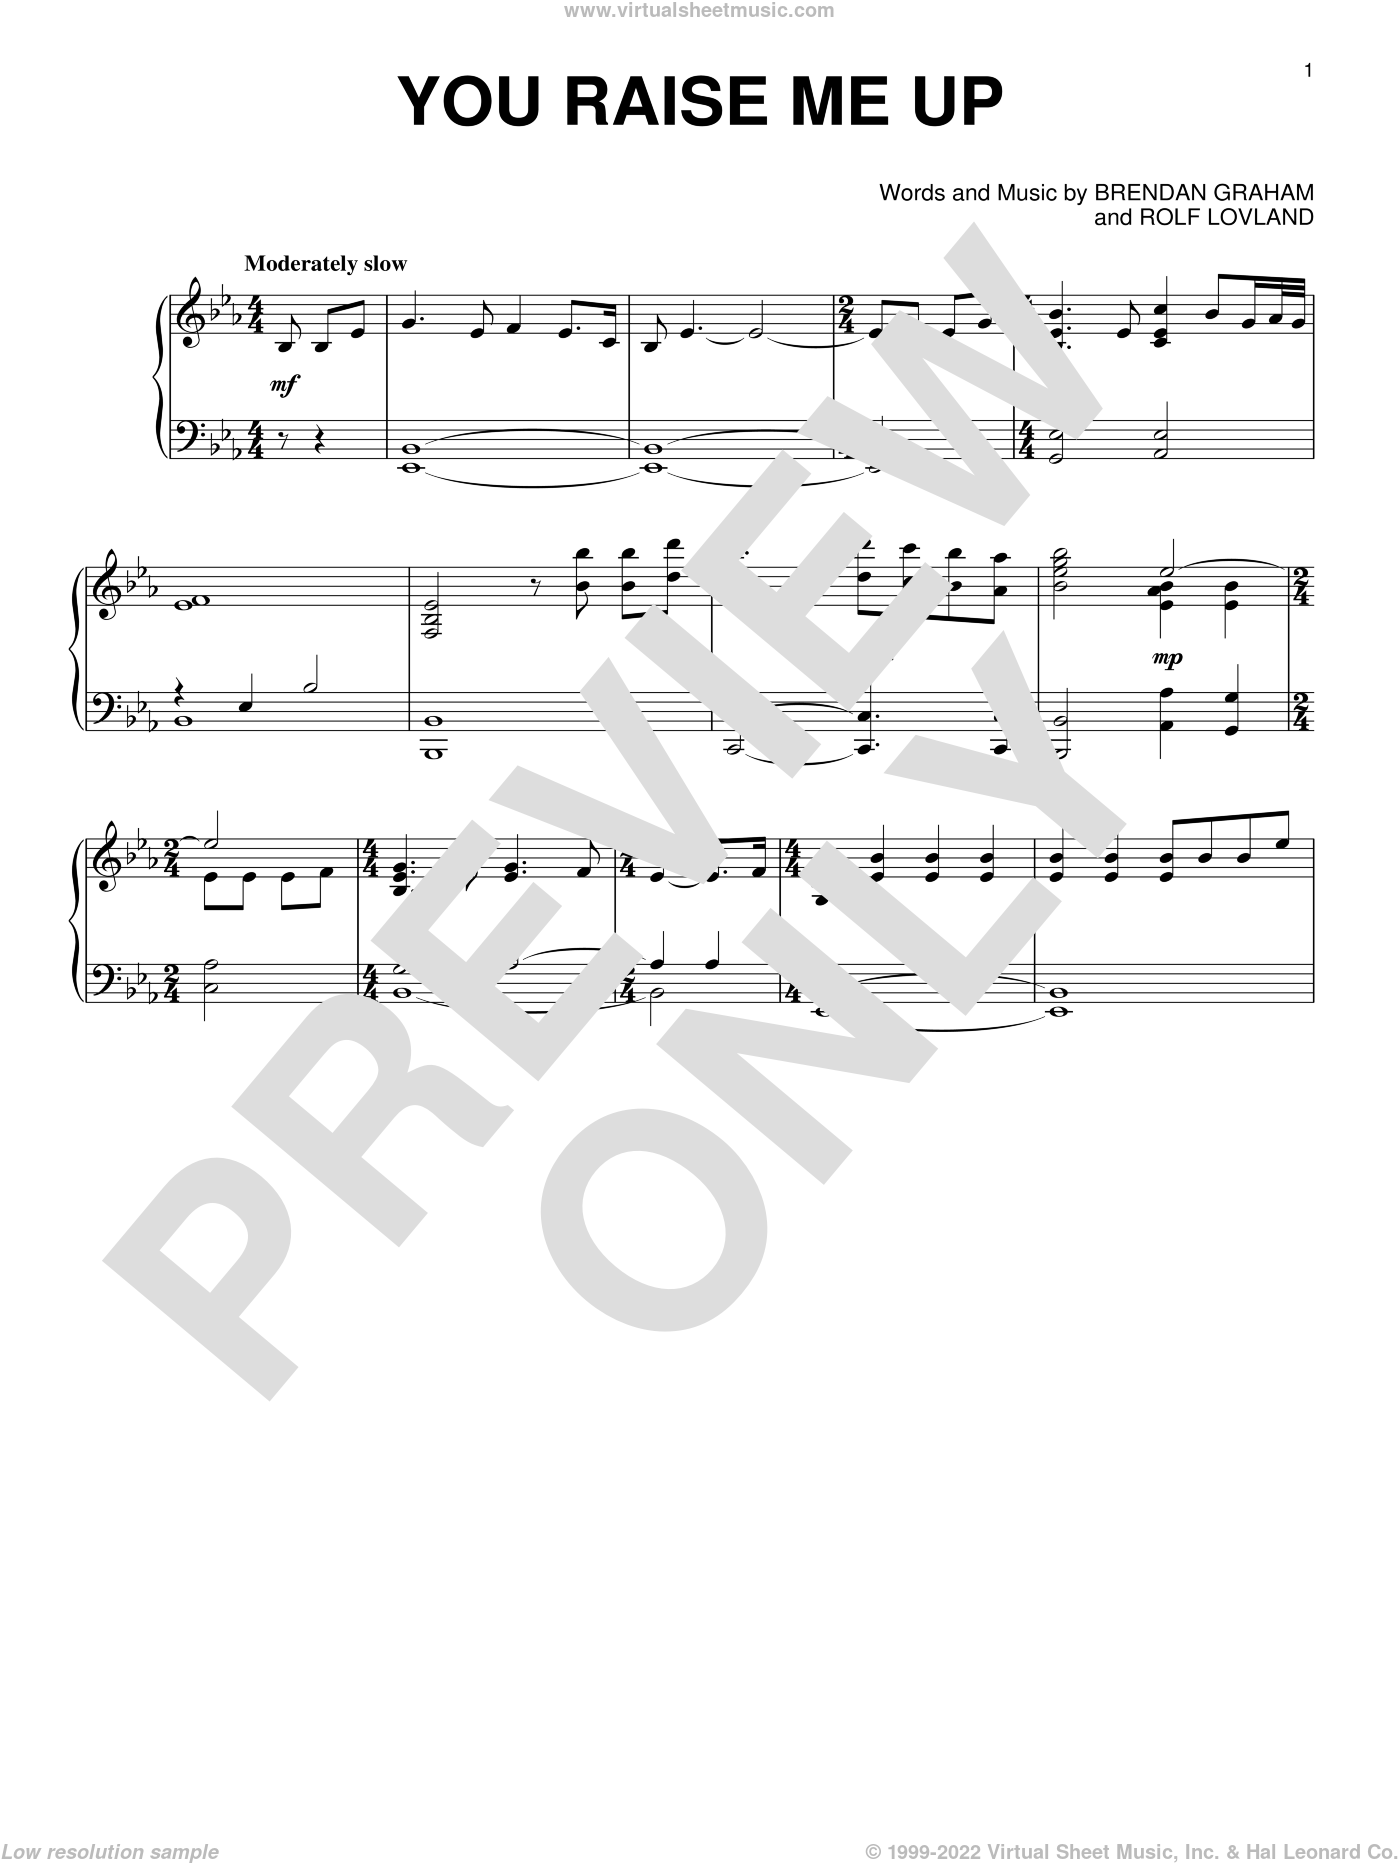 You Raise Me Up, (intermediate) sheet music for piano solo by Josh Groban, Secret Garden, Brendan Graham and Rolf Lovland, wedding score, intermediate skill level